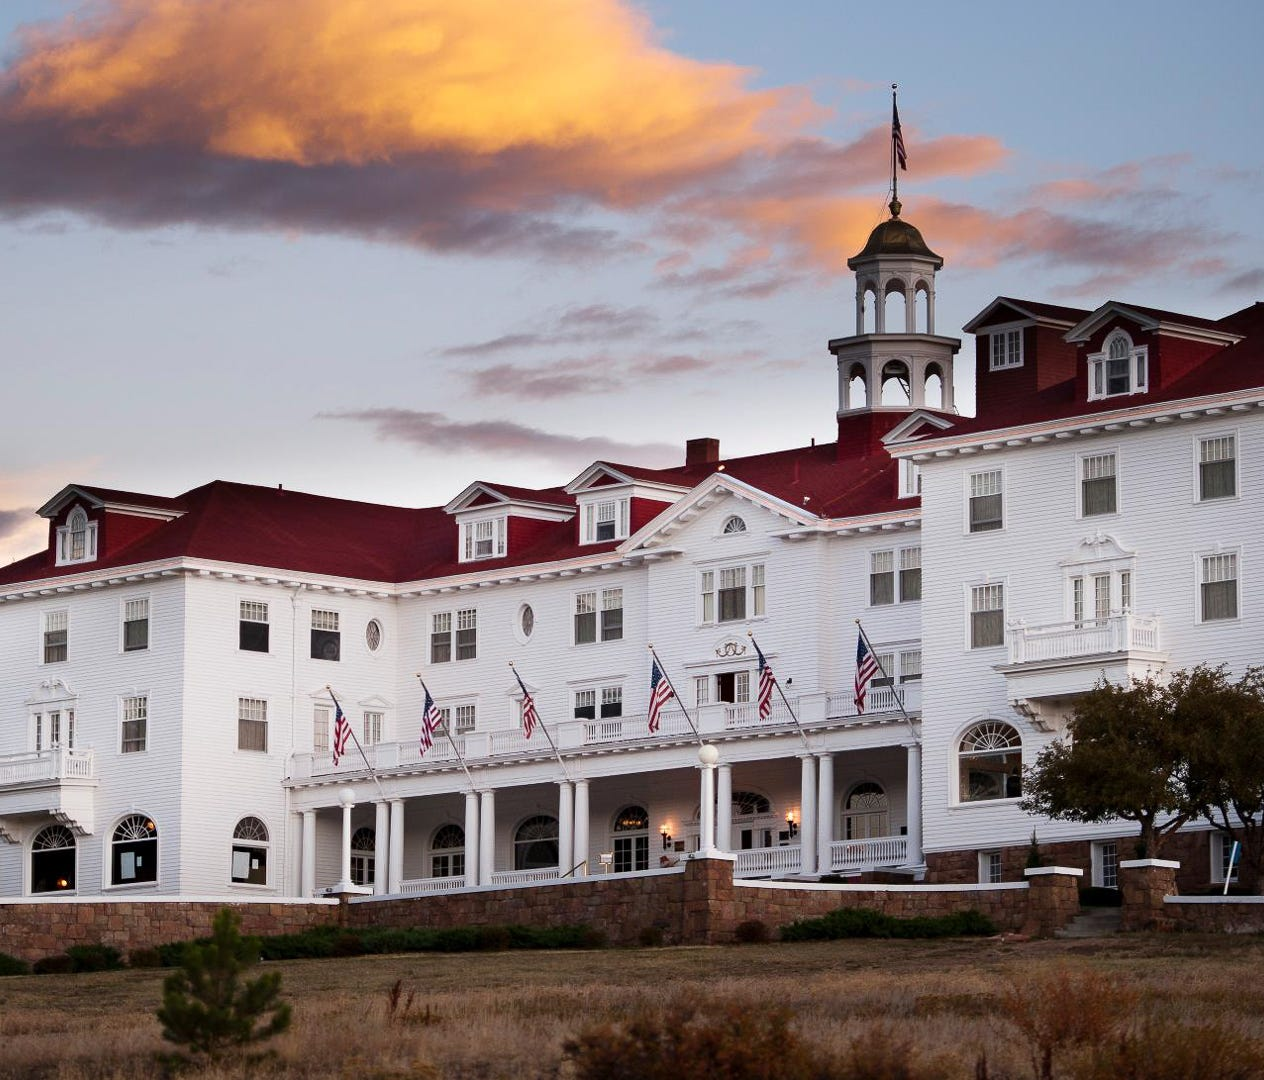 Stanley Hotel, Estes Park, Colo. (Estimated nightly rate: From $237): If you want to visit a location from your favorite movie, plan a trip to this haunted hotel. The Stanley Hotel might be best known as the inspiration for Stephen King's novel,